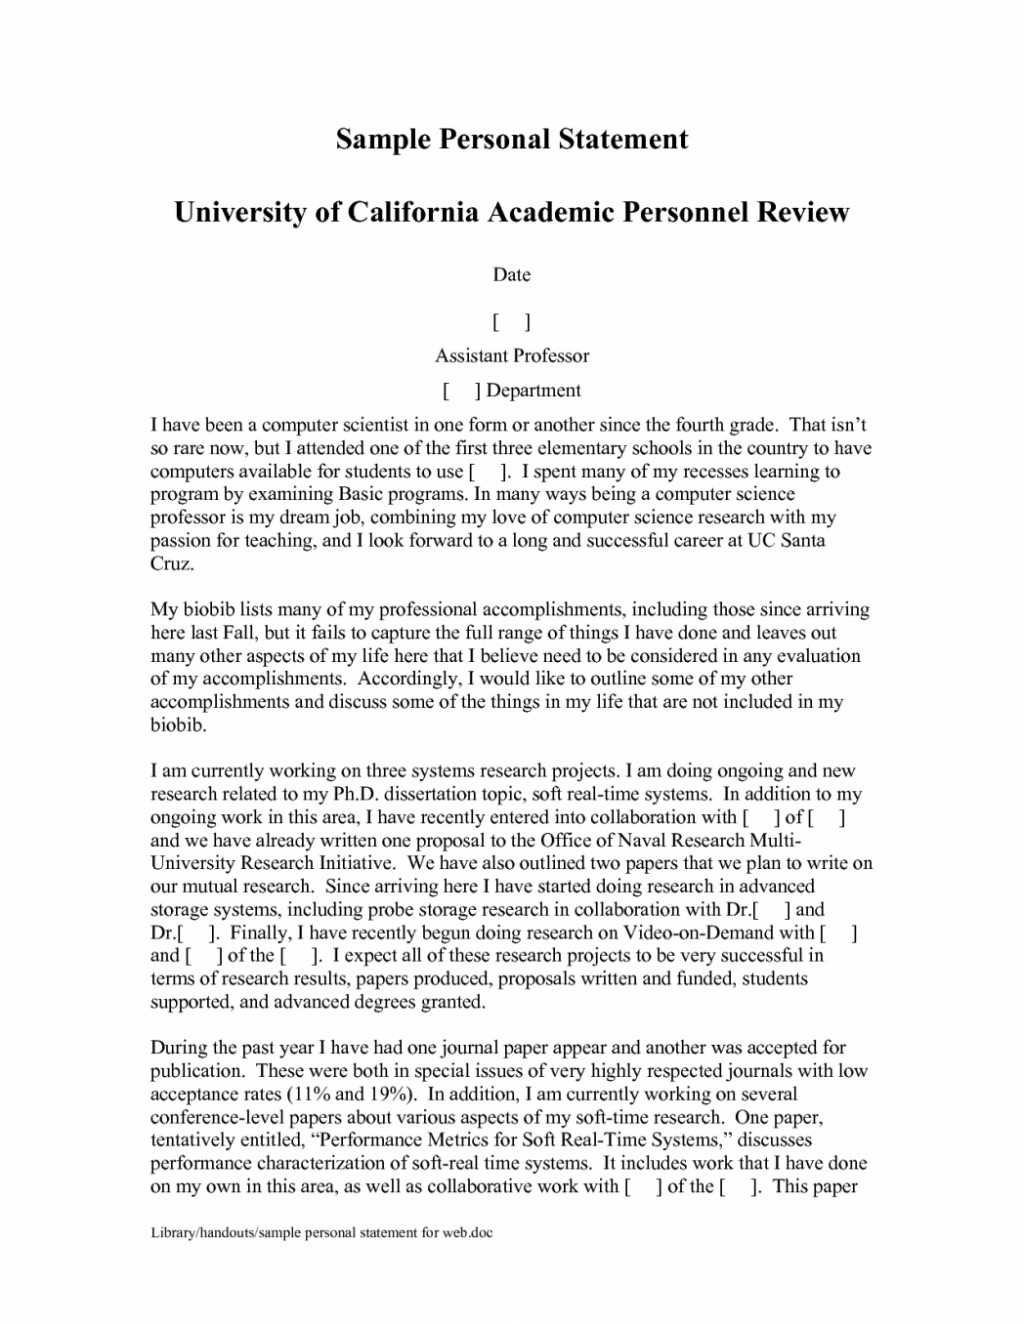 005 Essay Example Word How To Write Personal Profile Examples An On Microsoft Of Statements For Graduate School Template 0mc Definition Accent Choice Good One Incredible 3000 Double Spaced Pages Large